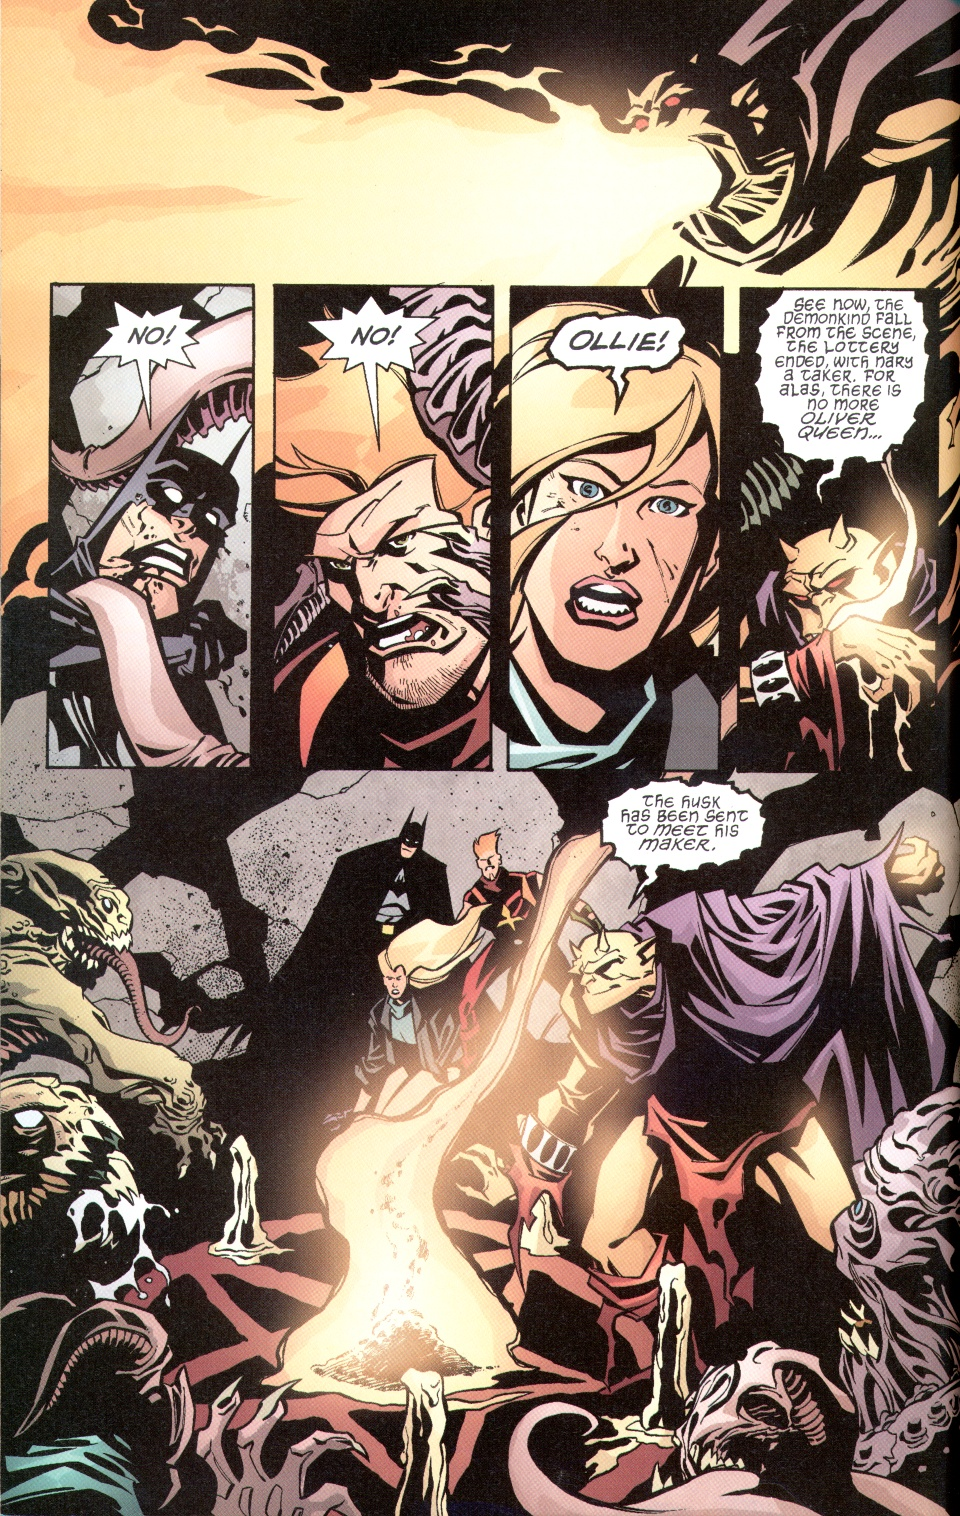 GAv4-006-22 quiver Batman Arsenal BlackCanary Etrigan.jpg